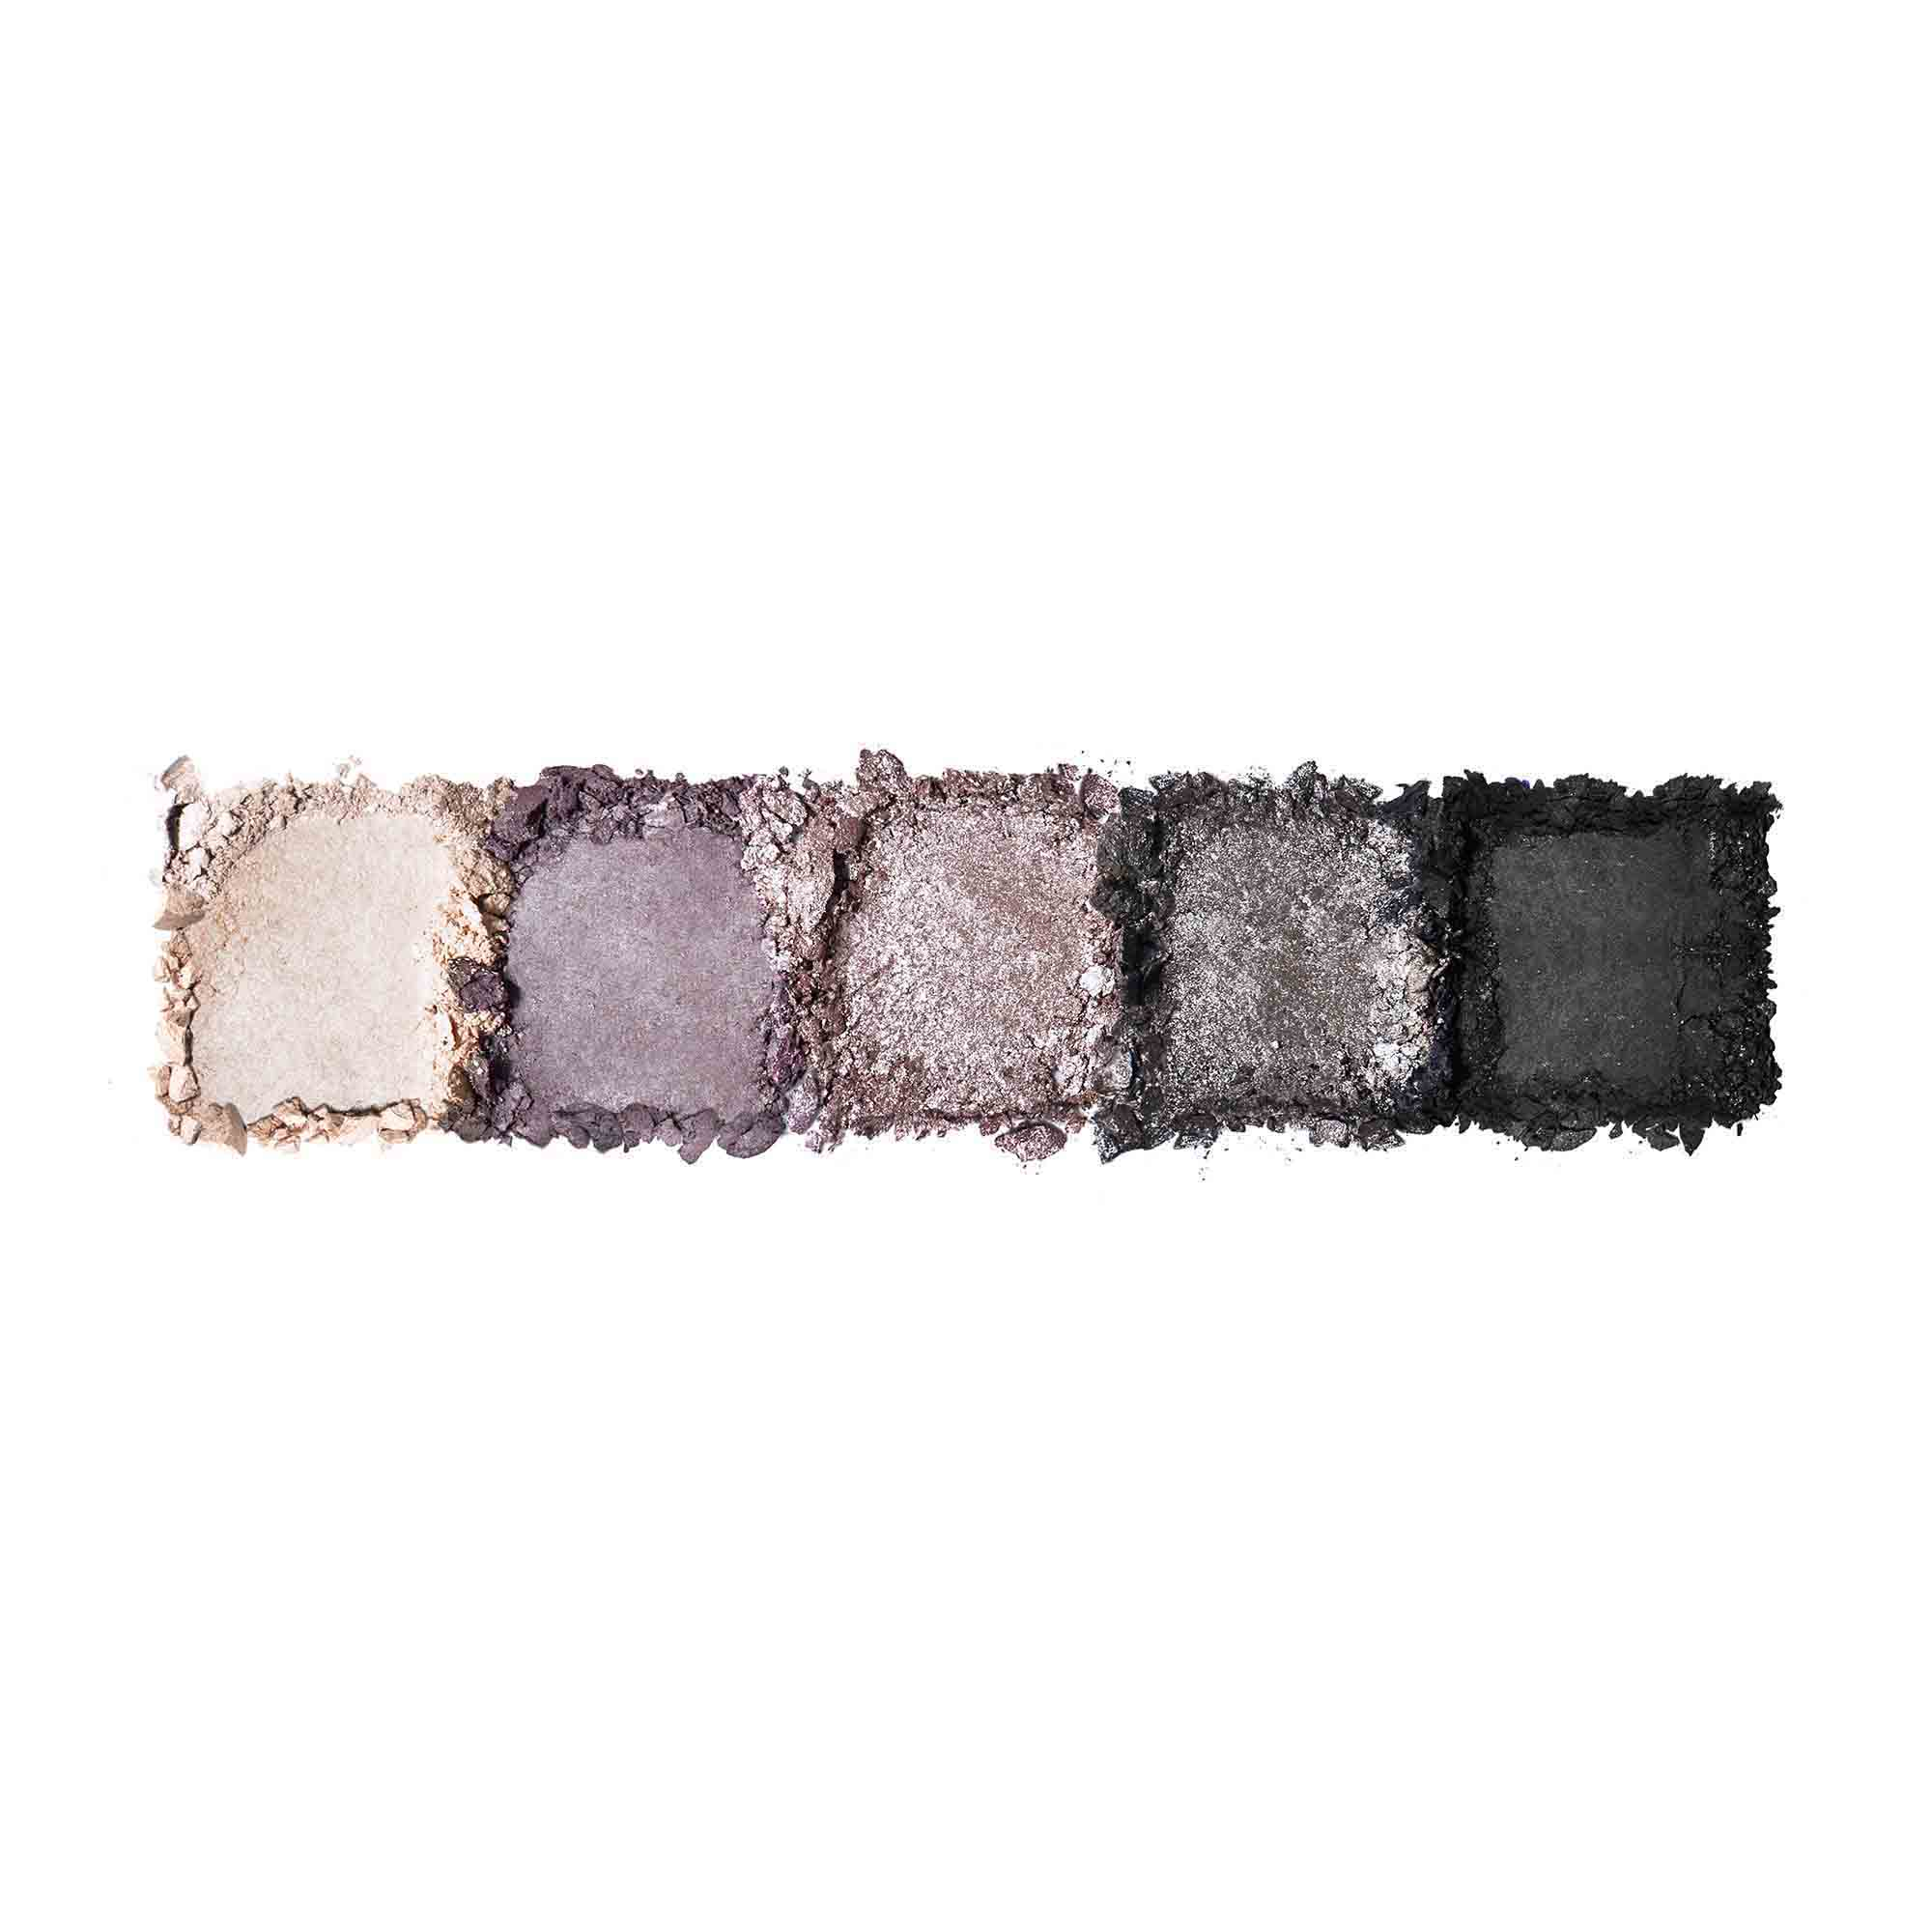 Perfect Pocket Palette Eyeshadow in Gilty Pleasure by Beauty Pie